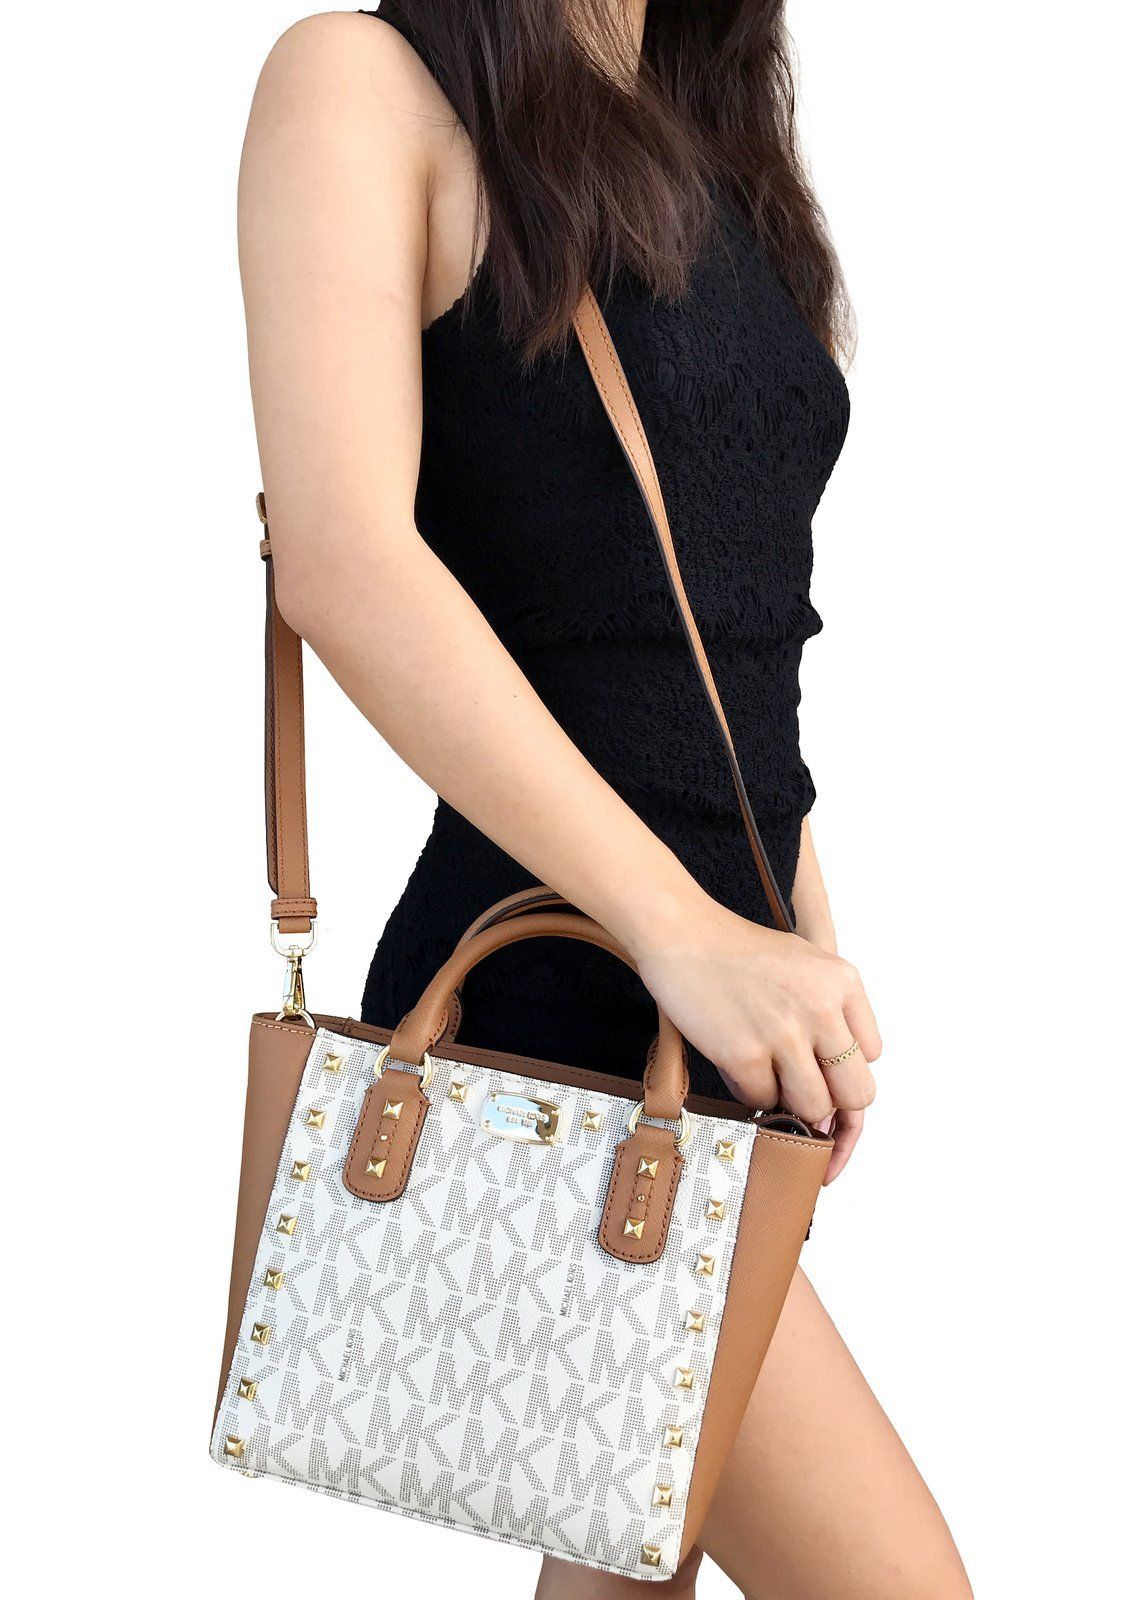 Michael Kors Sandrine Stud Signature Small Crossbody handbag in Vanilla/Acorn by Michael Kors